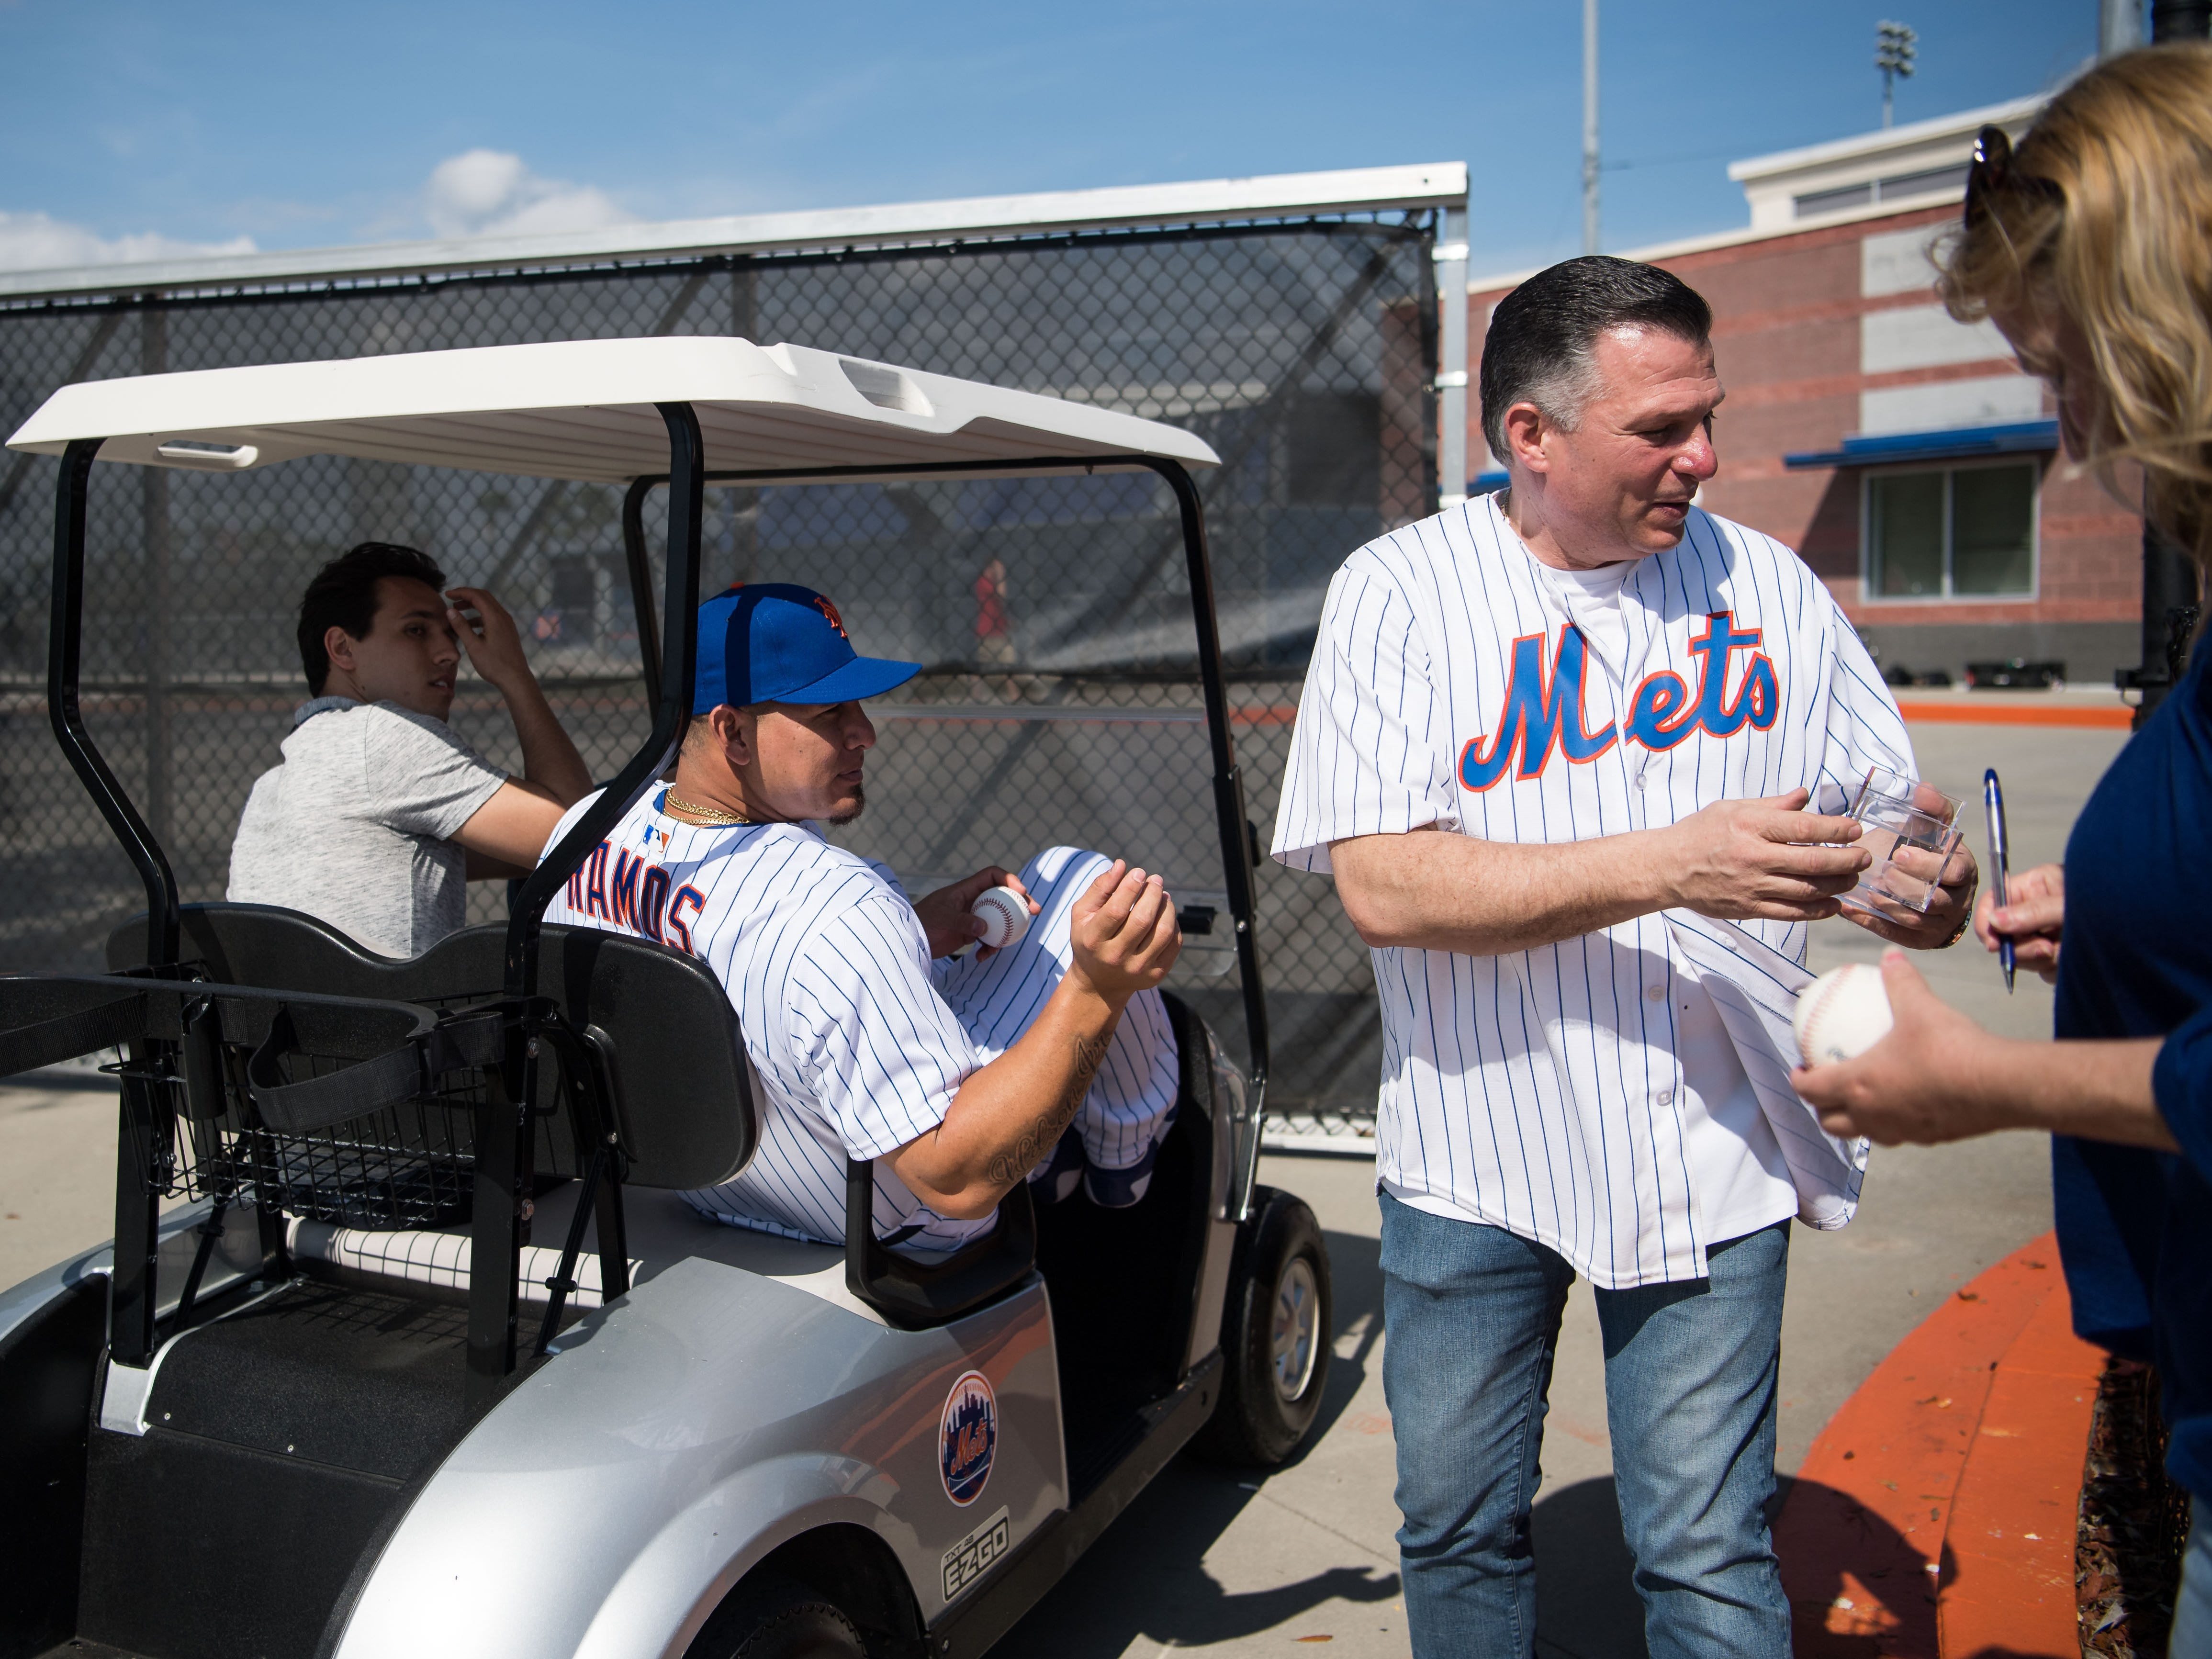 New York Mets catcher Wilson Ramos signs autographs for fans, including Henry Iervolino (right), of Long Island, at spring training Saturday, Feb. 16, 2019, outside the ballpark at First Data Field in Port St. Lucie.